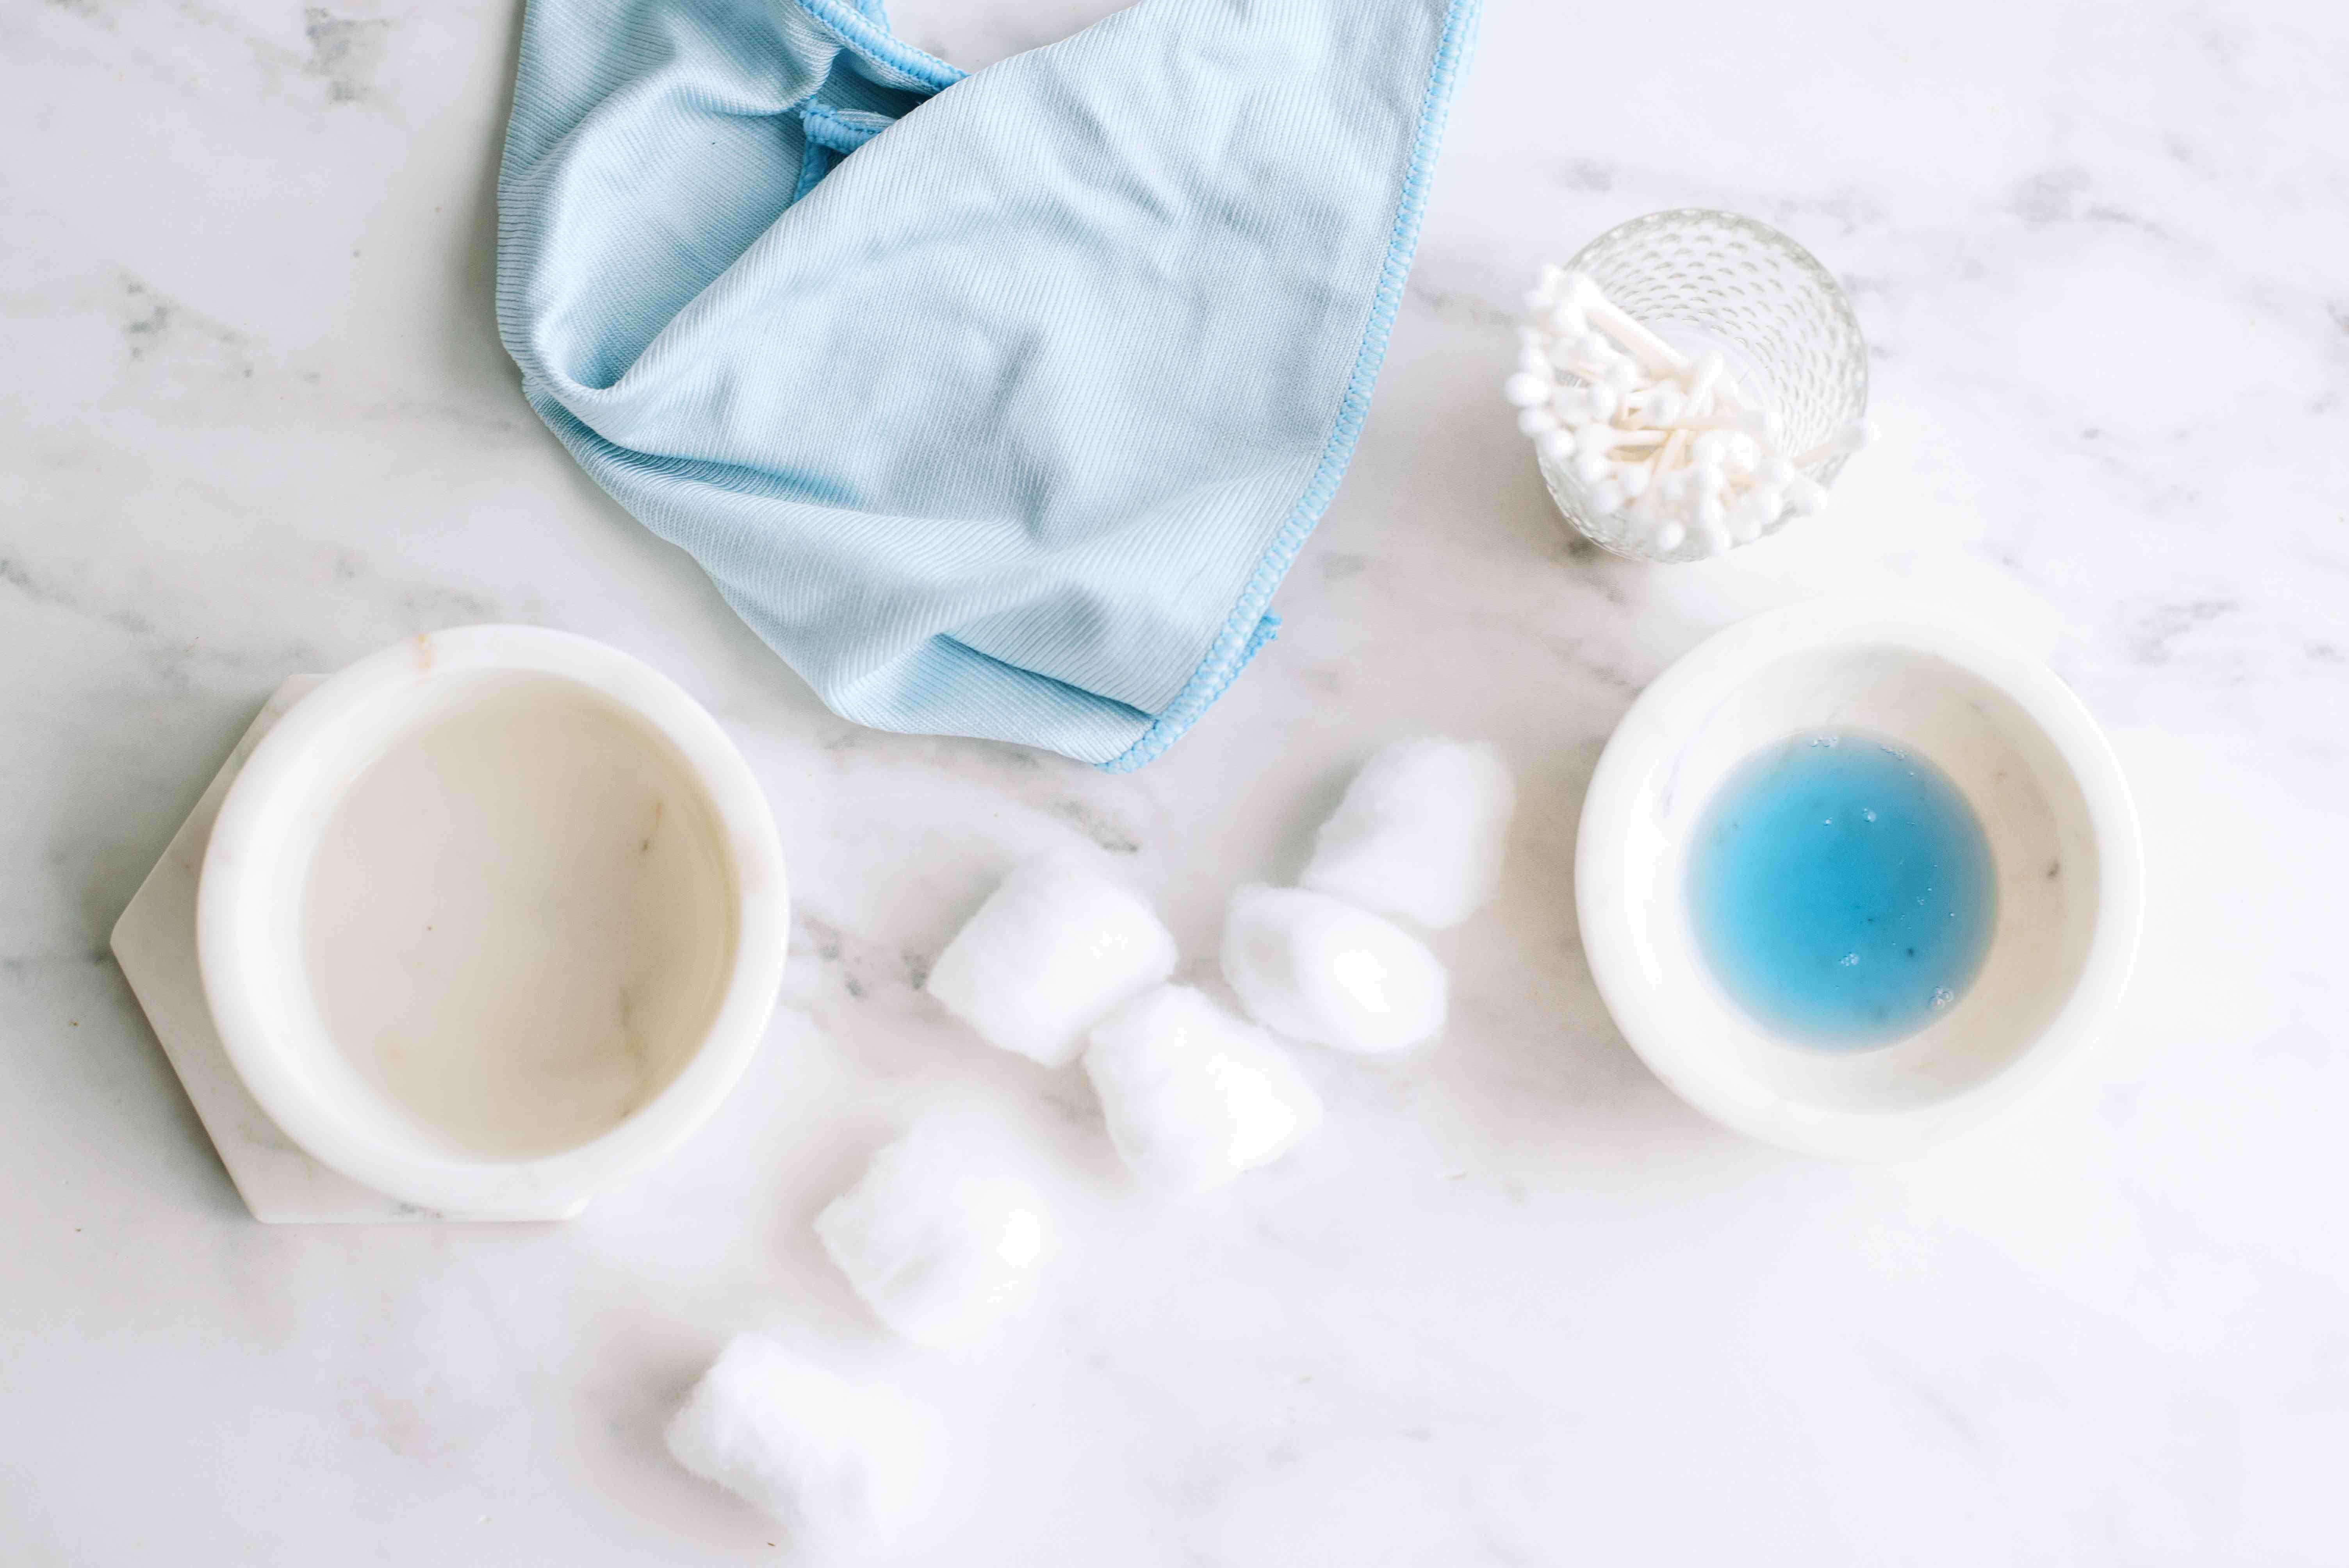 supplies for cleaning gold-plated jewelry